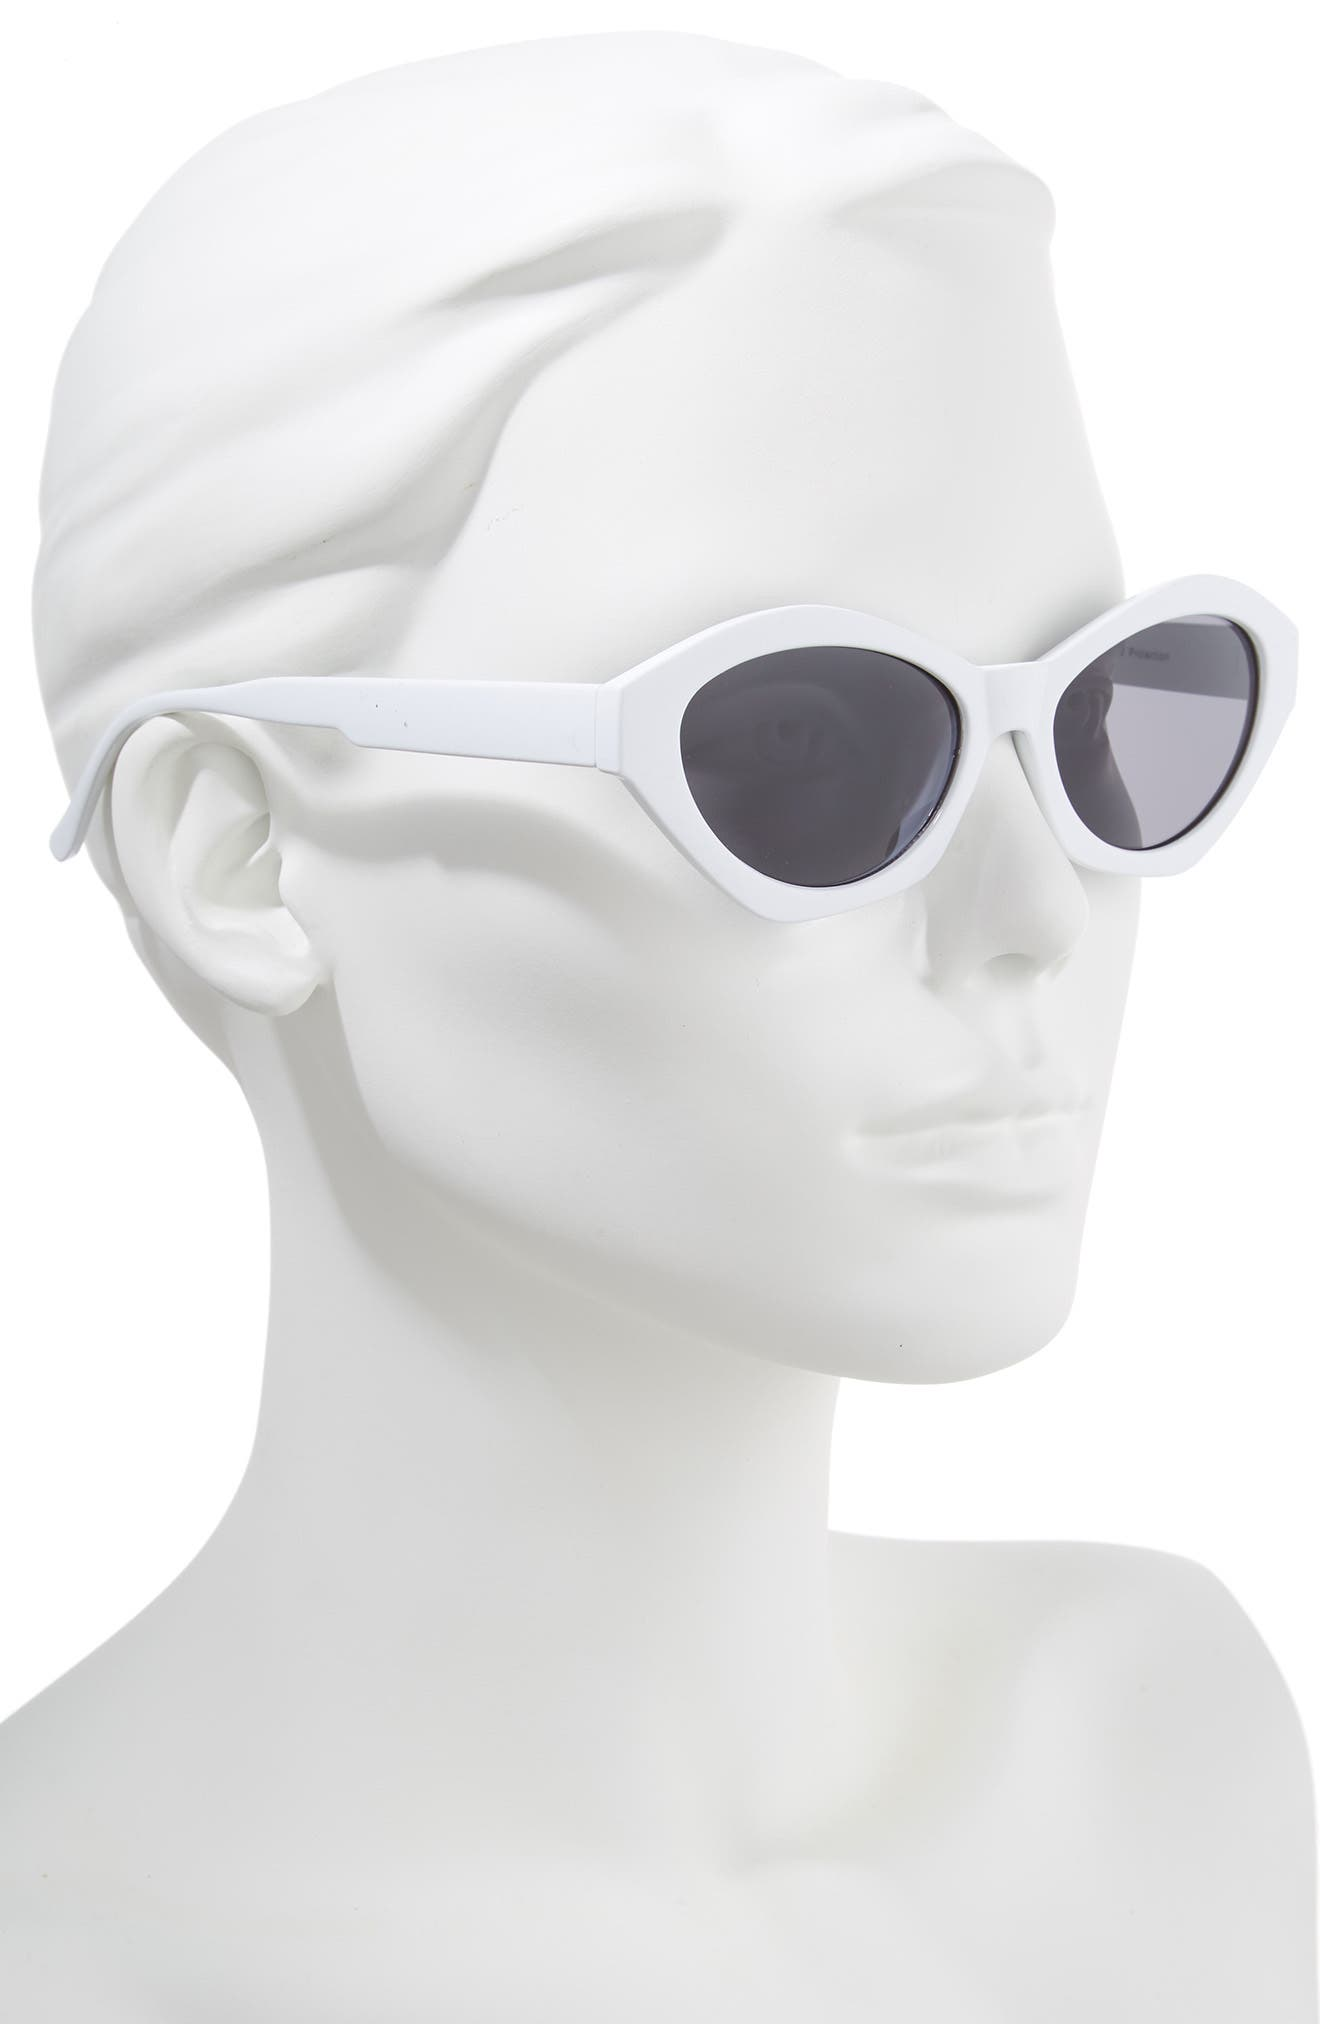 58mm Curved Cat Eye Sunglasses,                             Alternate thumbnail 2, color,                             White